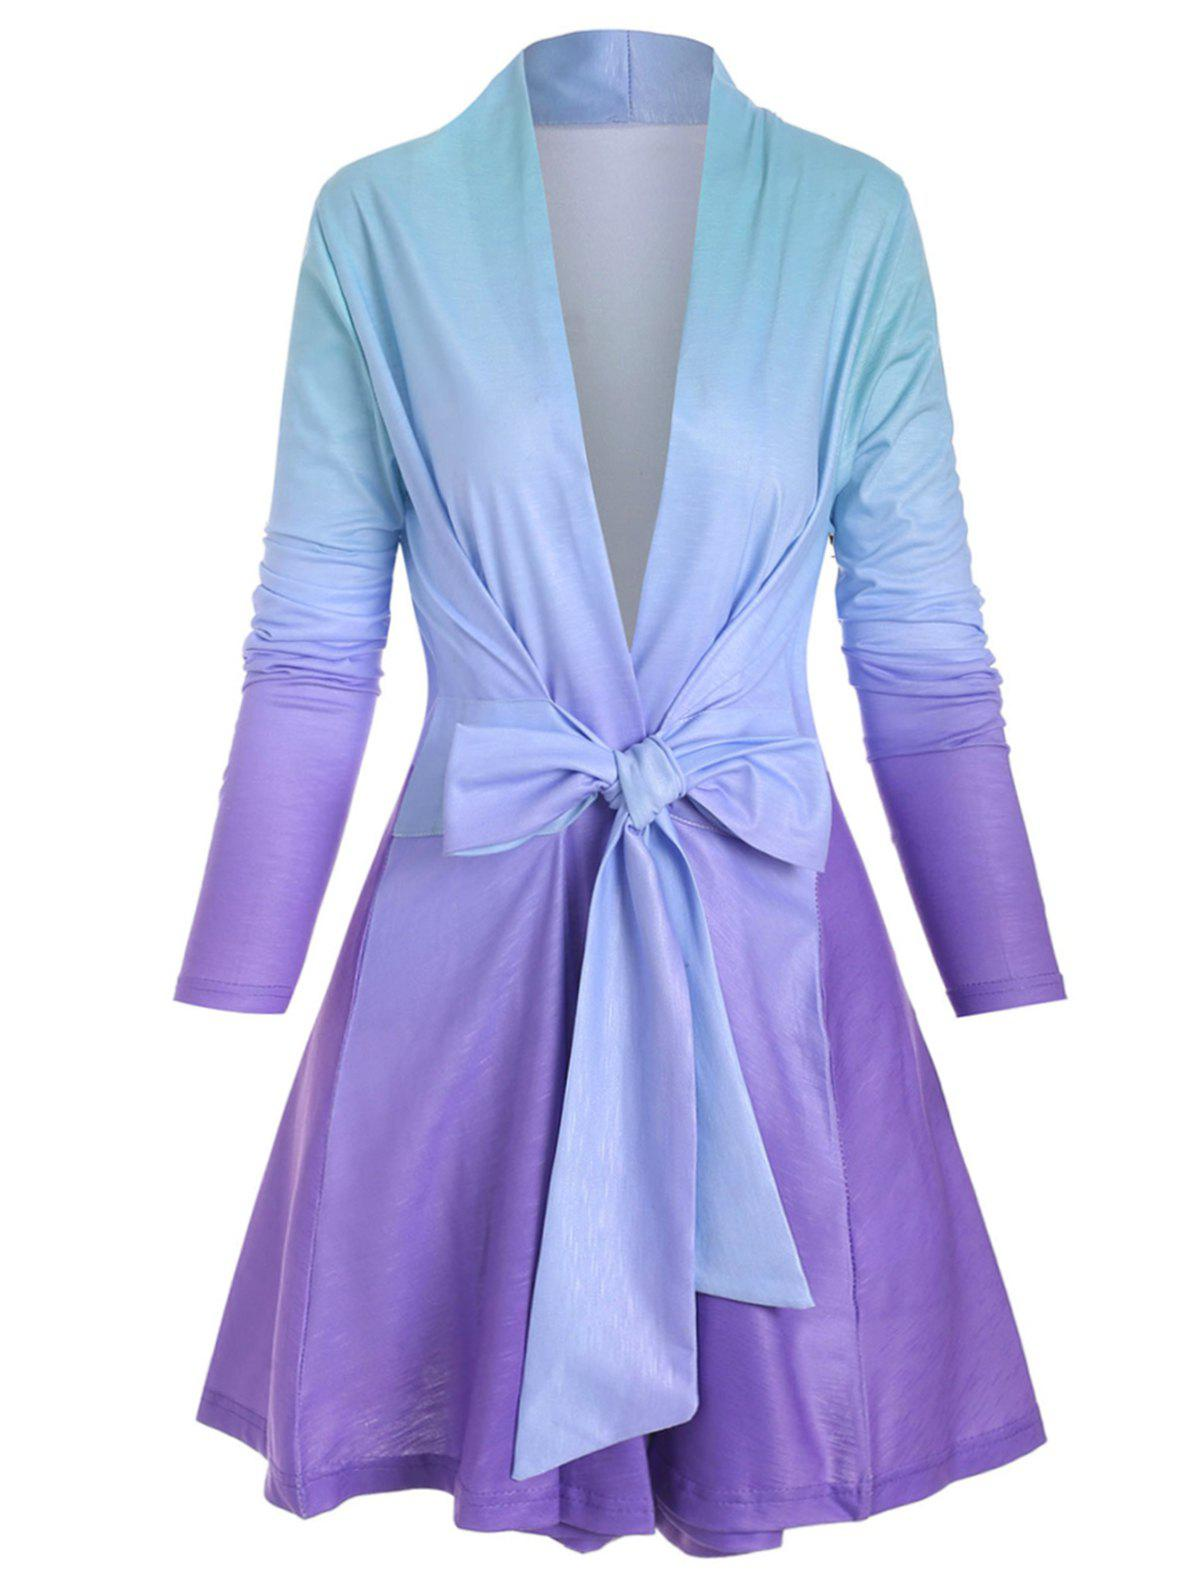 Plus Size Ombre Color Wrap Jacket - PURPLE 5X